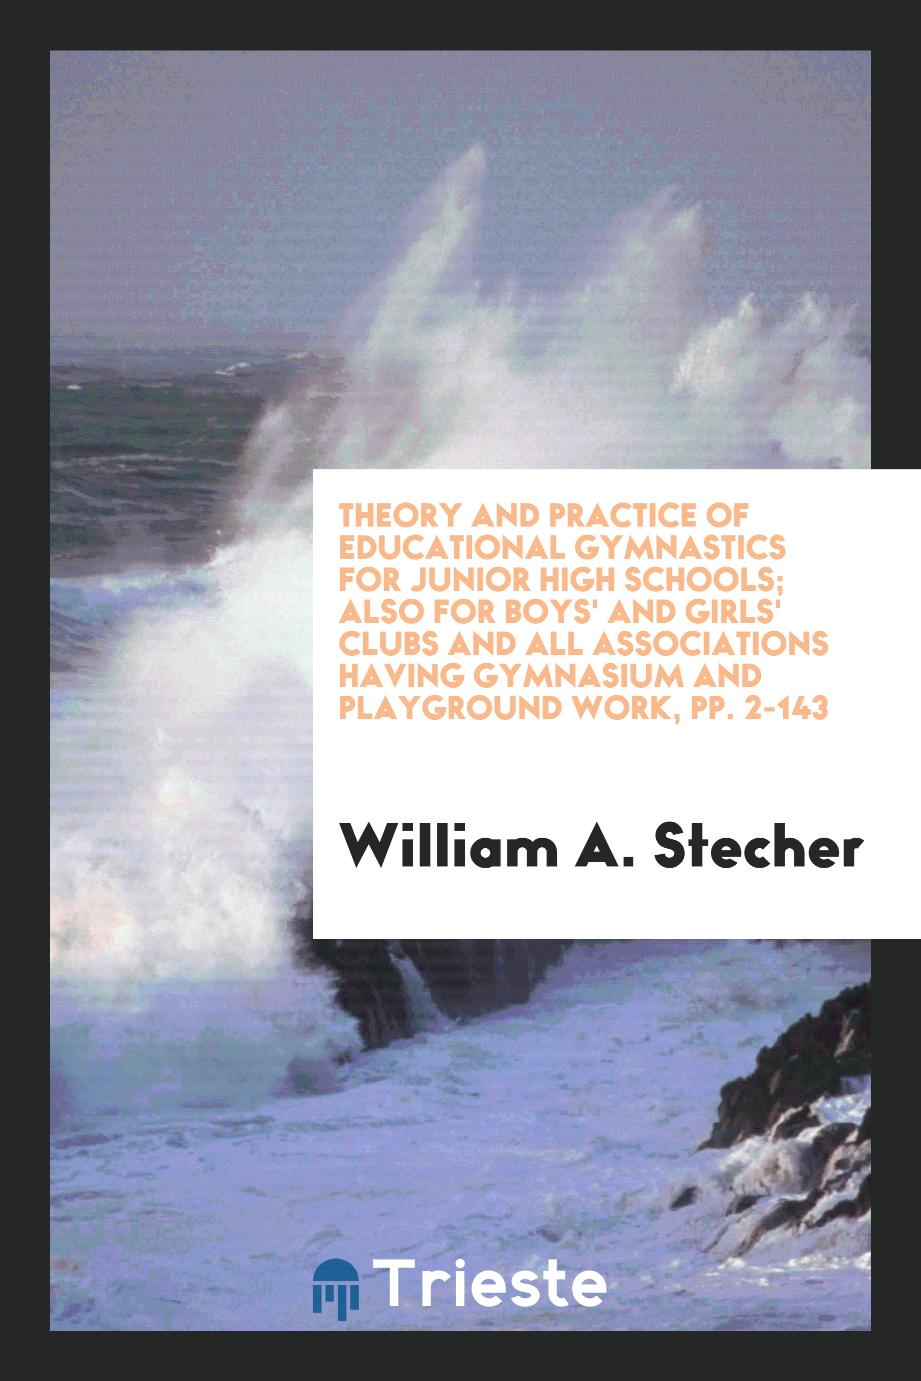 Theory and Practice of Educational Gymnastics for Junior High Schools; Also for Boys' and Girls' Clubs and All Associations Having Gymnasium and Playground Work, pp. 2-143